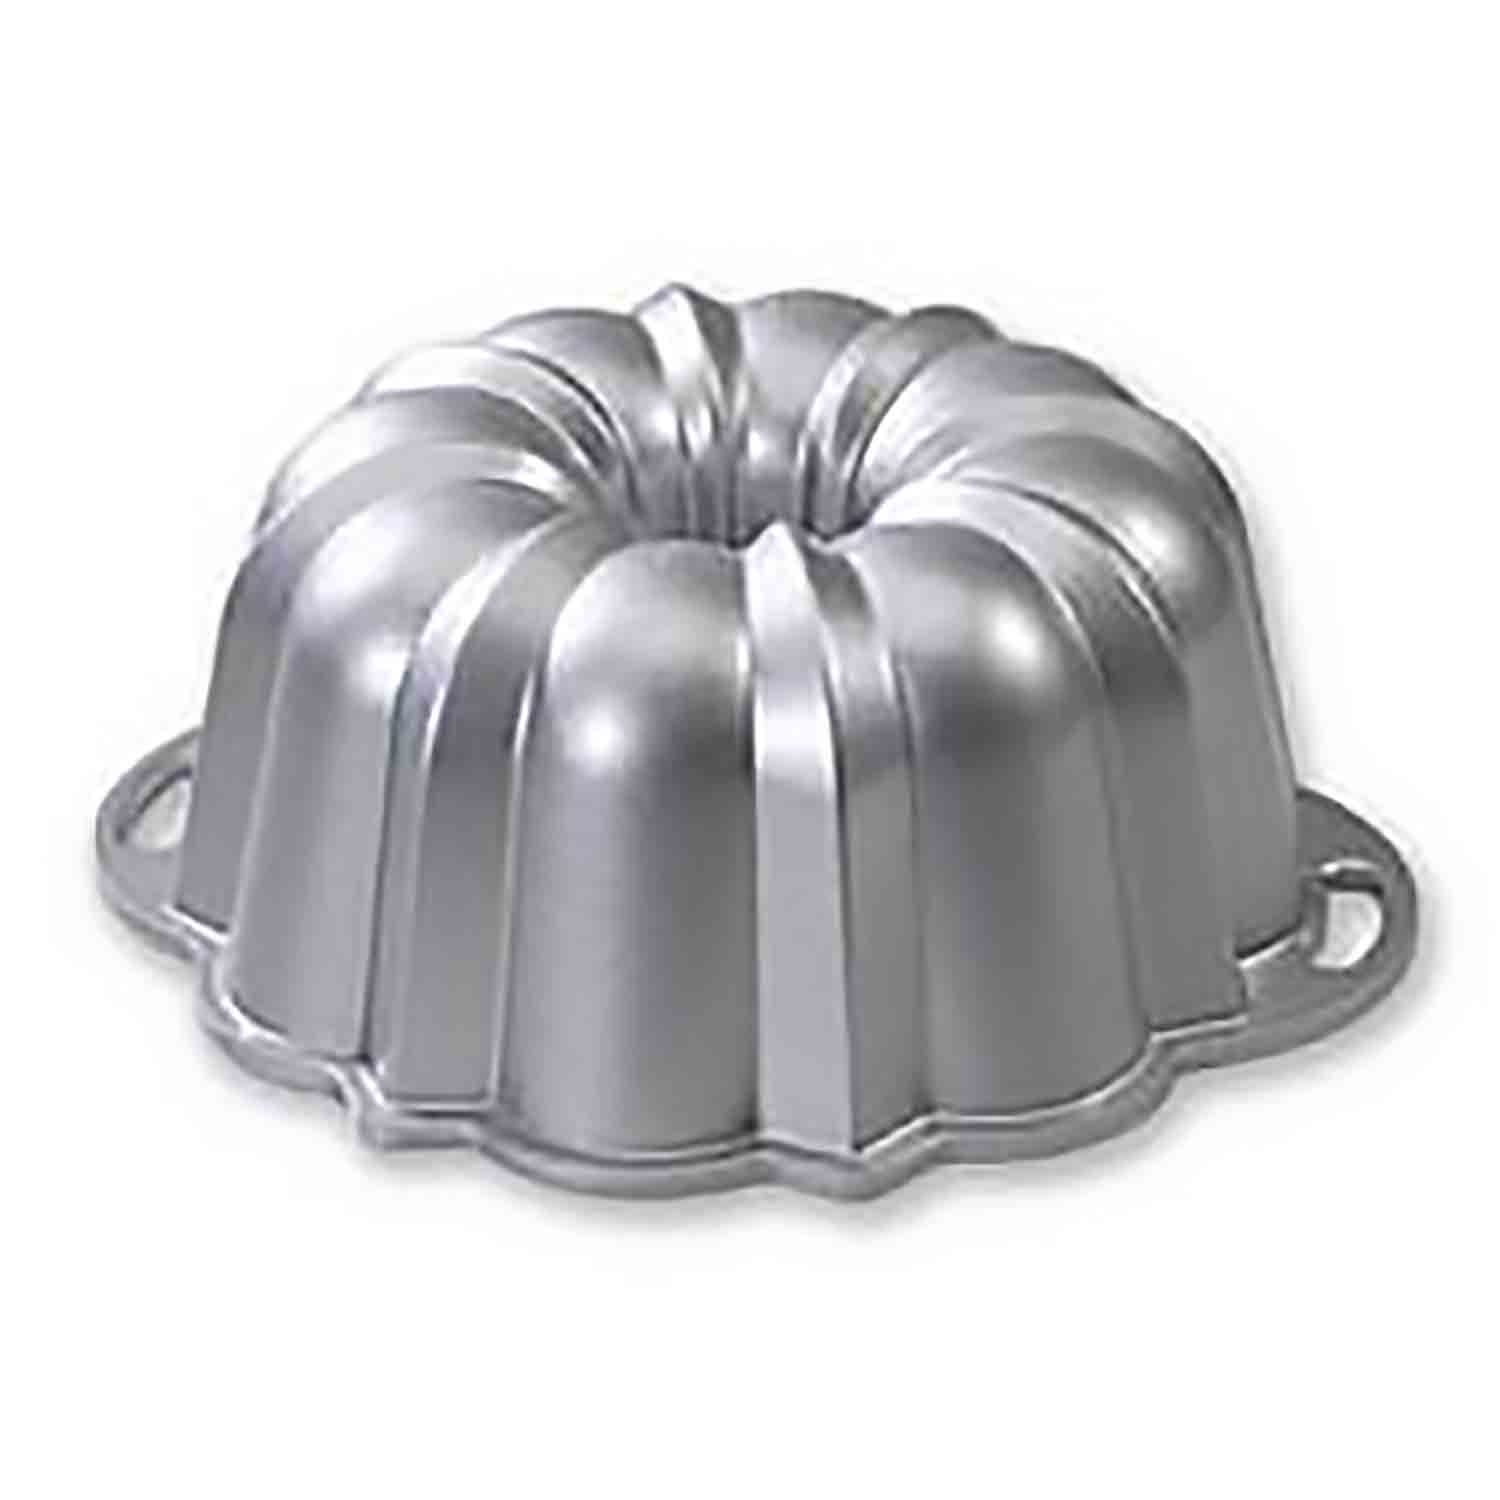 Original Bundt Cake Pan